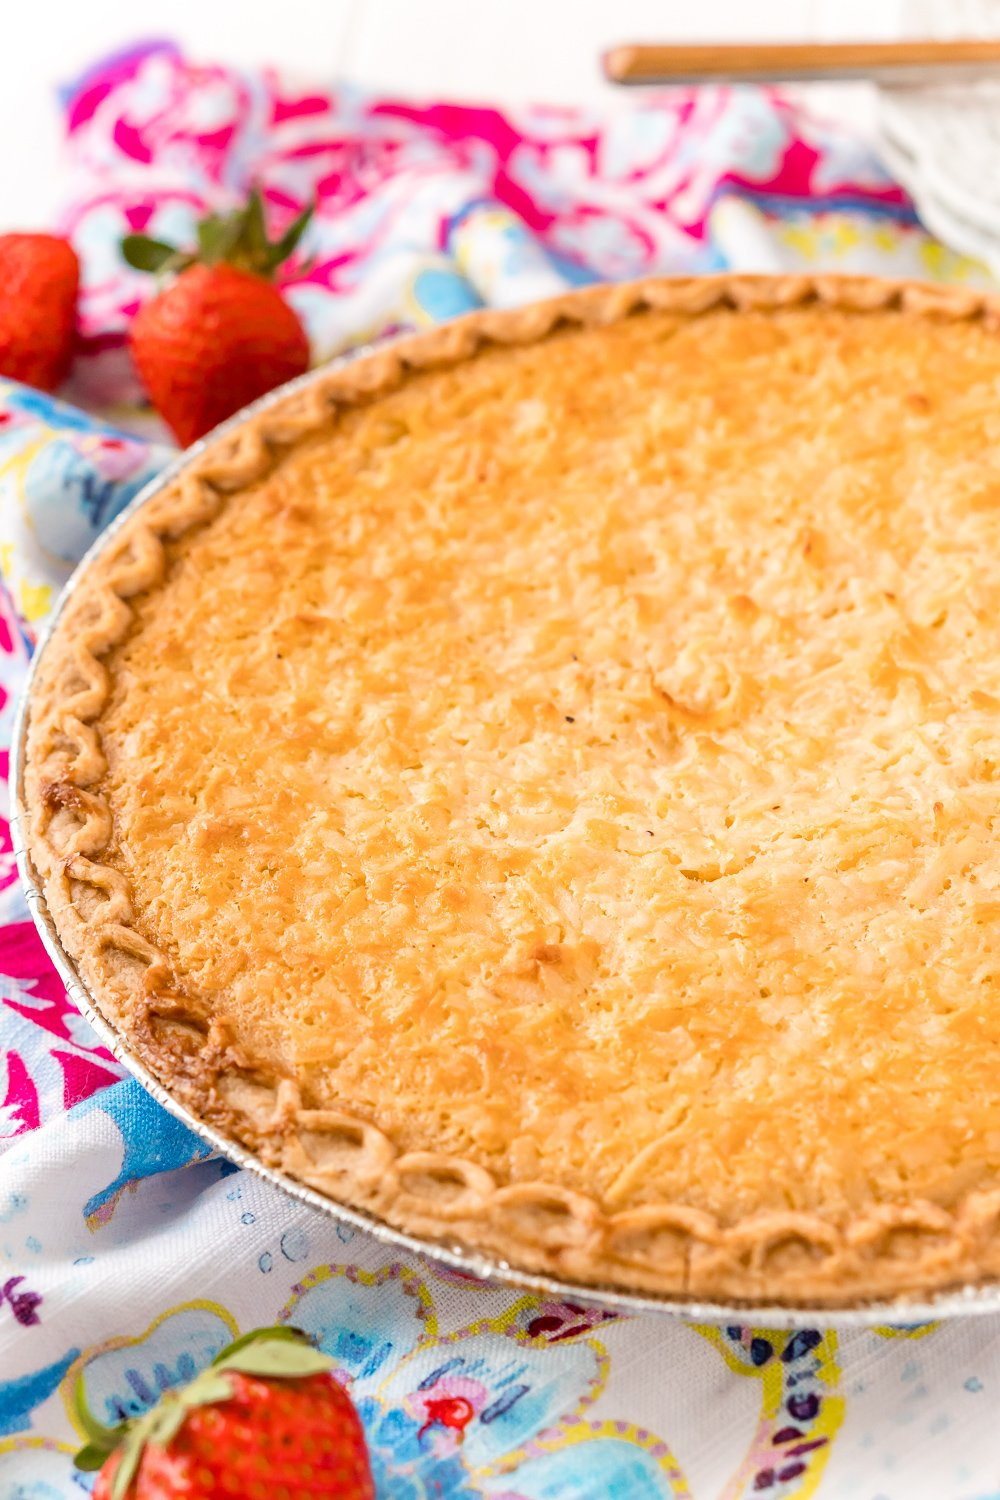 Photo of a Coconut Custard Pie in a pie tin with strawberries scattered around.